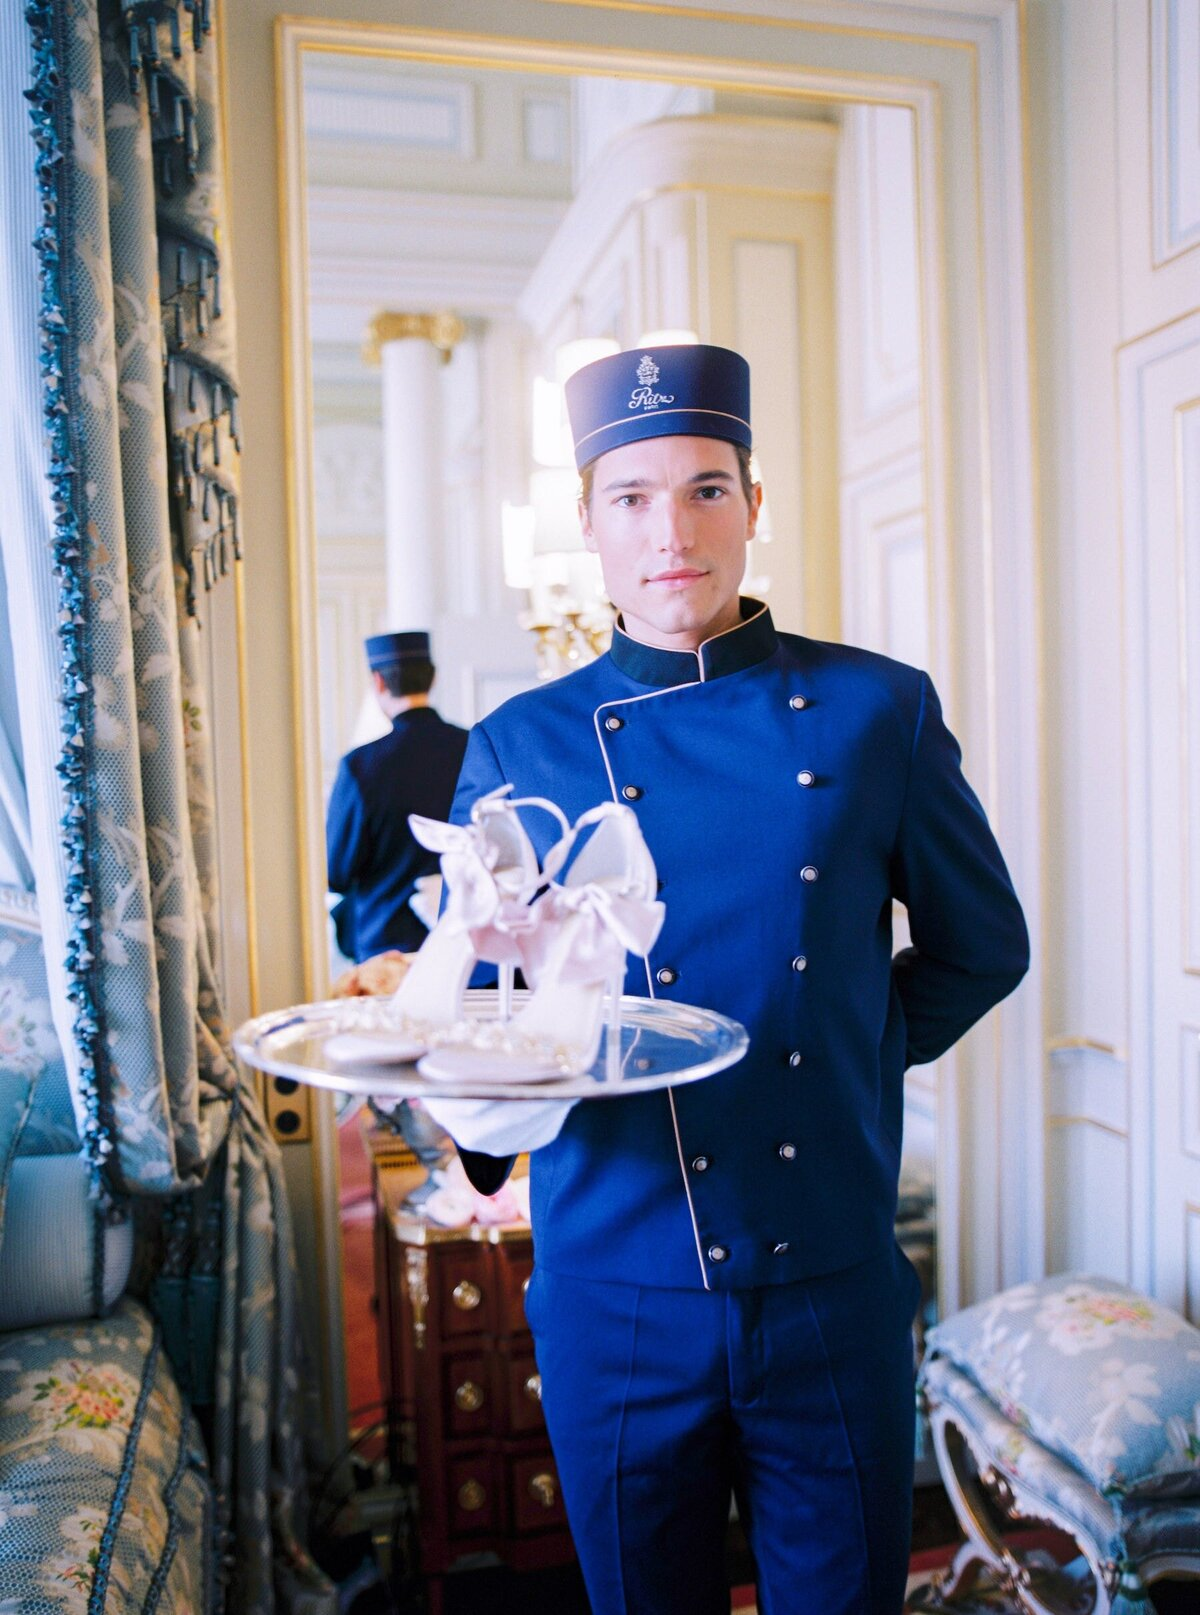 wedding-photographer-in-ritz-paris (18 of 29)